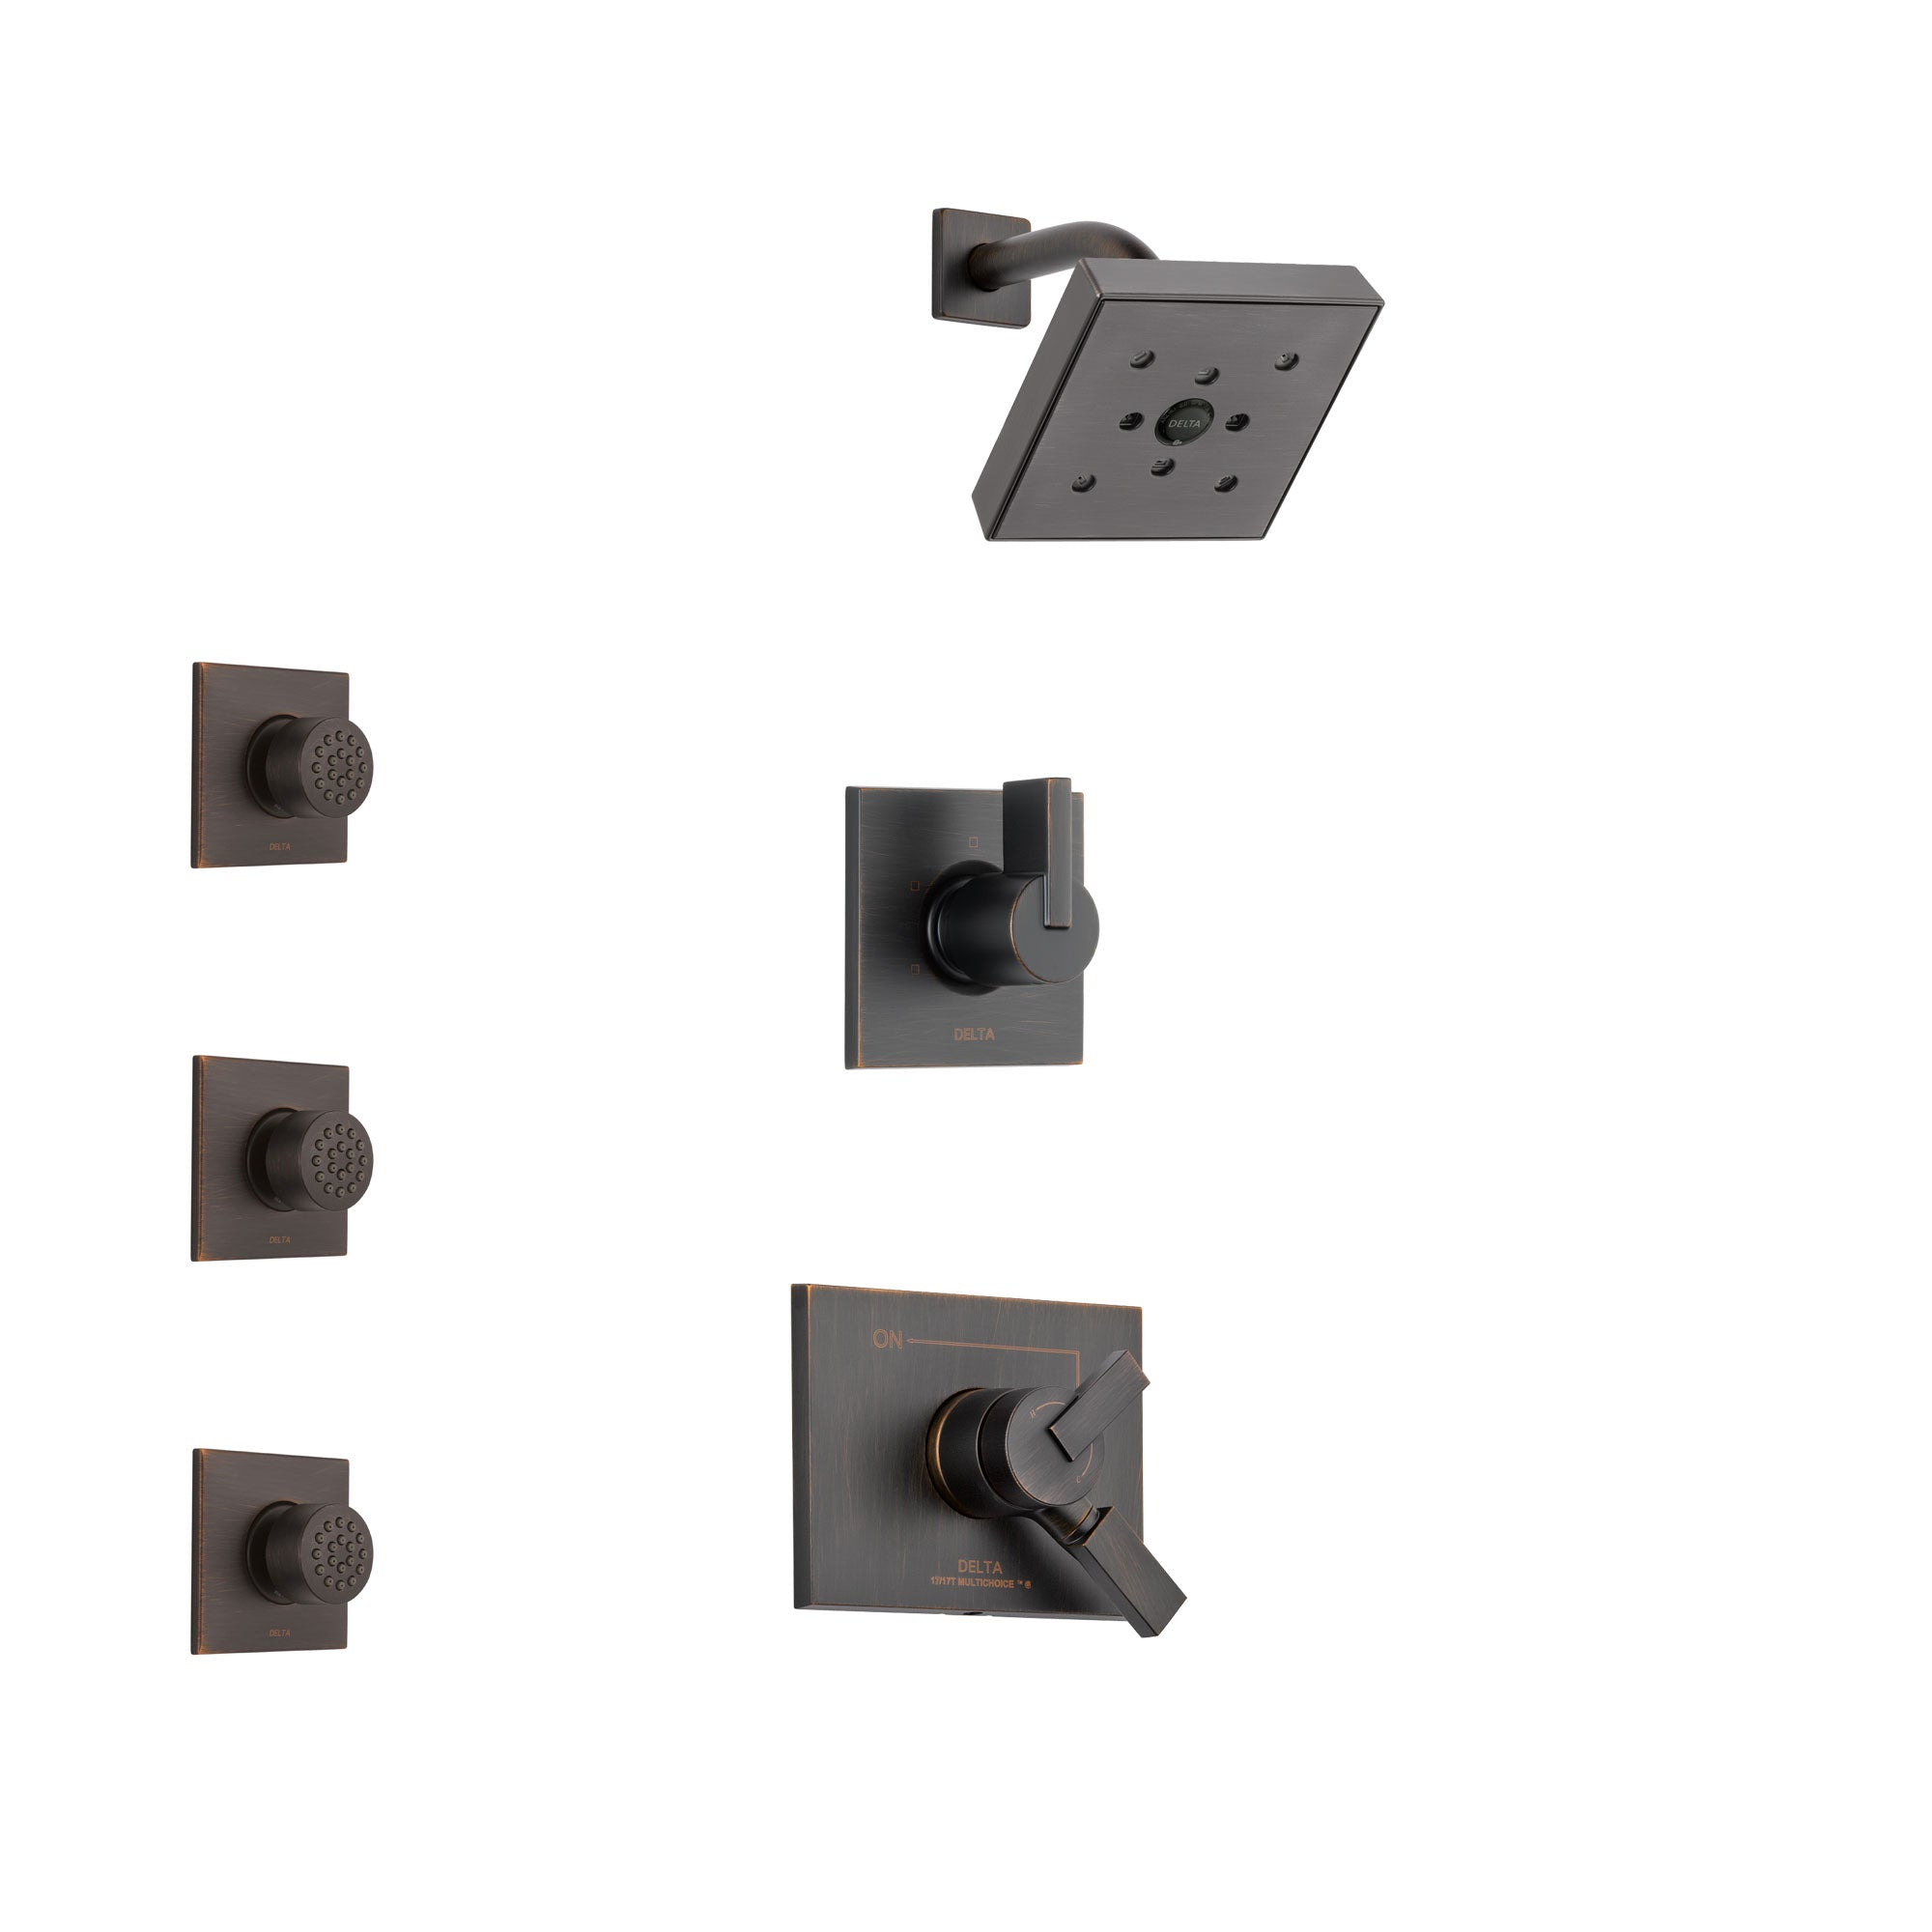 Delta Vero Venetian Bronze Finish Shower System with Dual Control Handle, 3-Setting Diverter, Showerhead, and 3 Body Sprays SS172532RB2